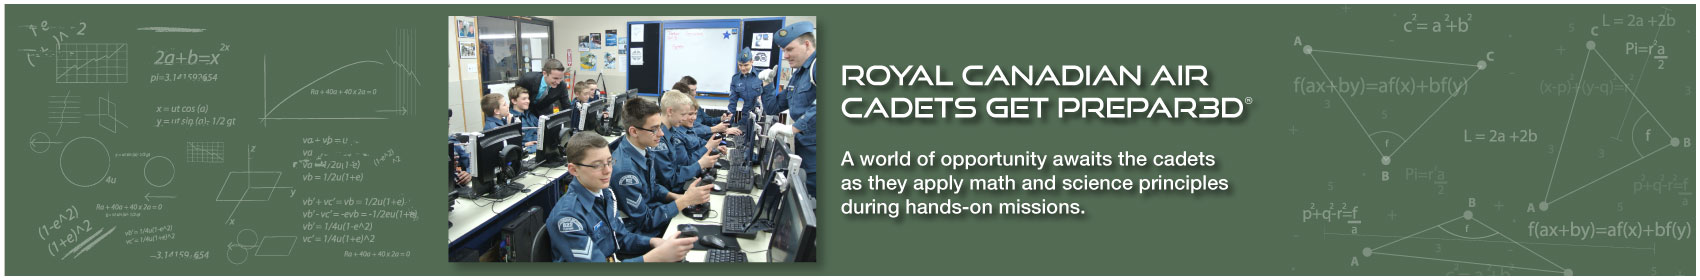 RC-Air-Cadets